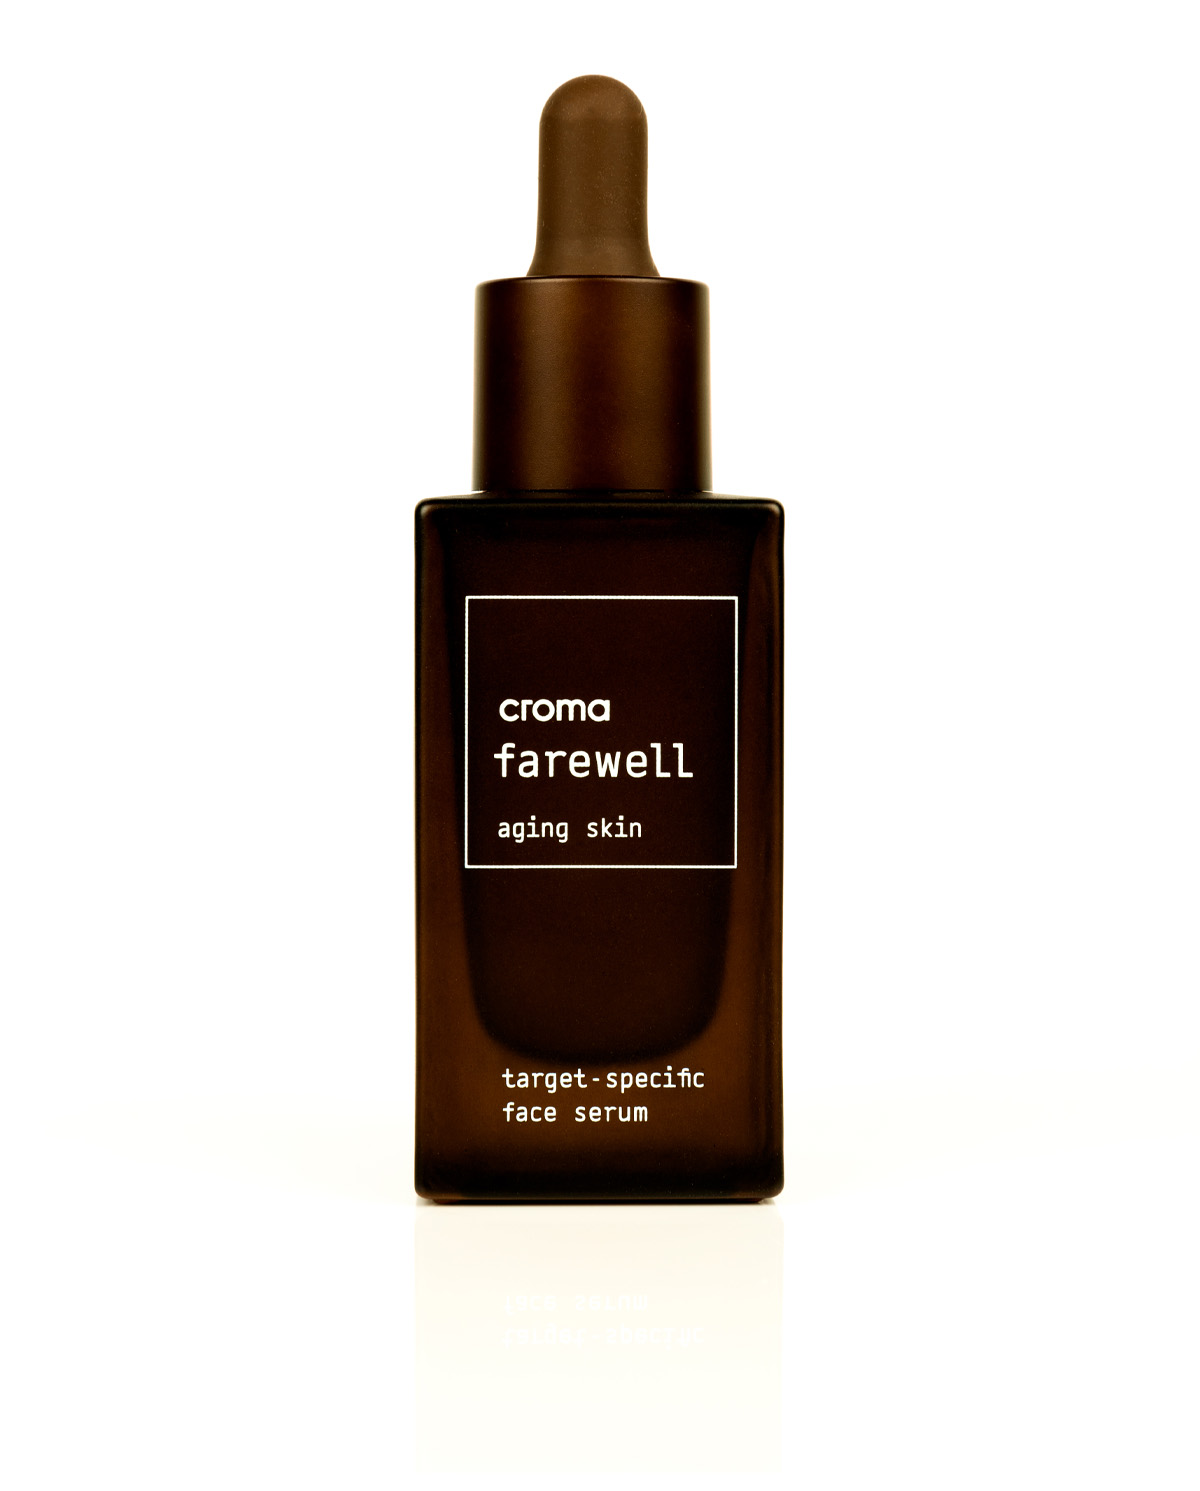 yuvell webshop farewell aging skin